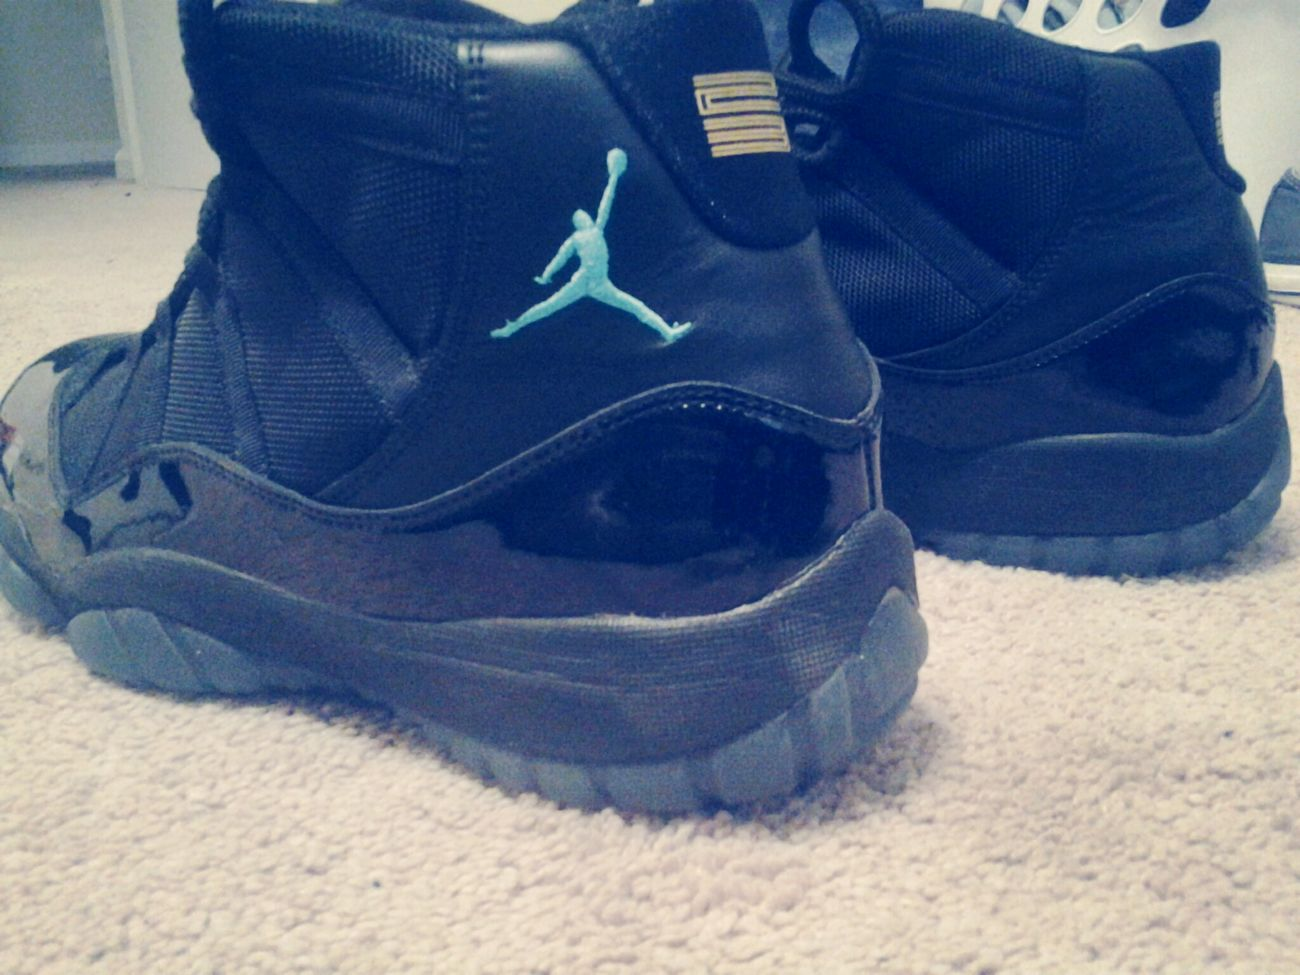 Jordans On My Feet  Gamma Blue 11's YoungndGifted YNG First Eyeem Photo